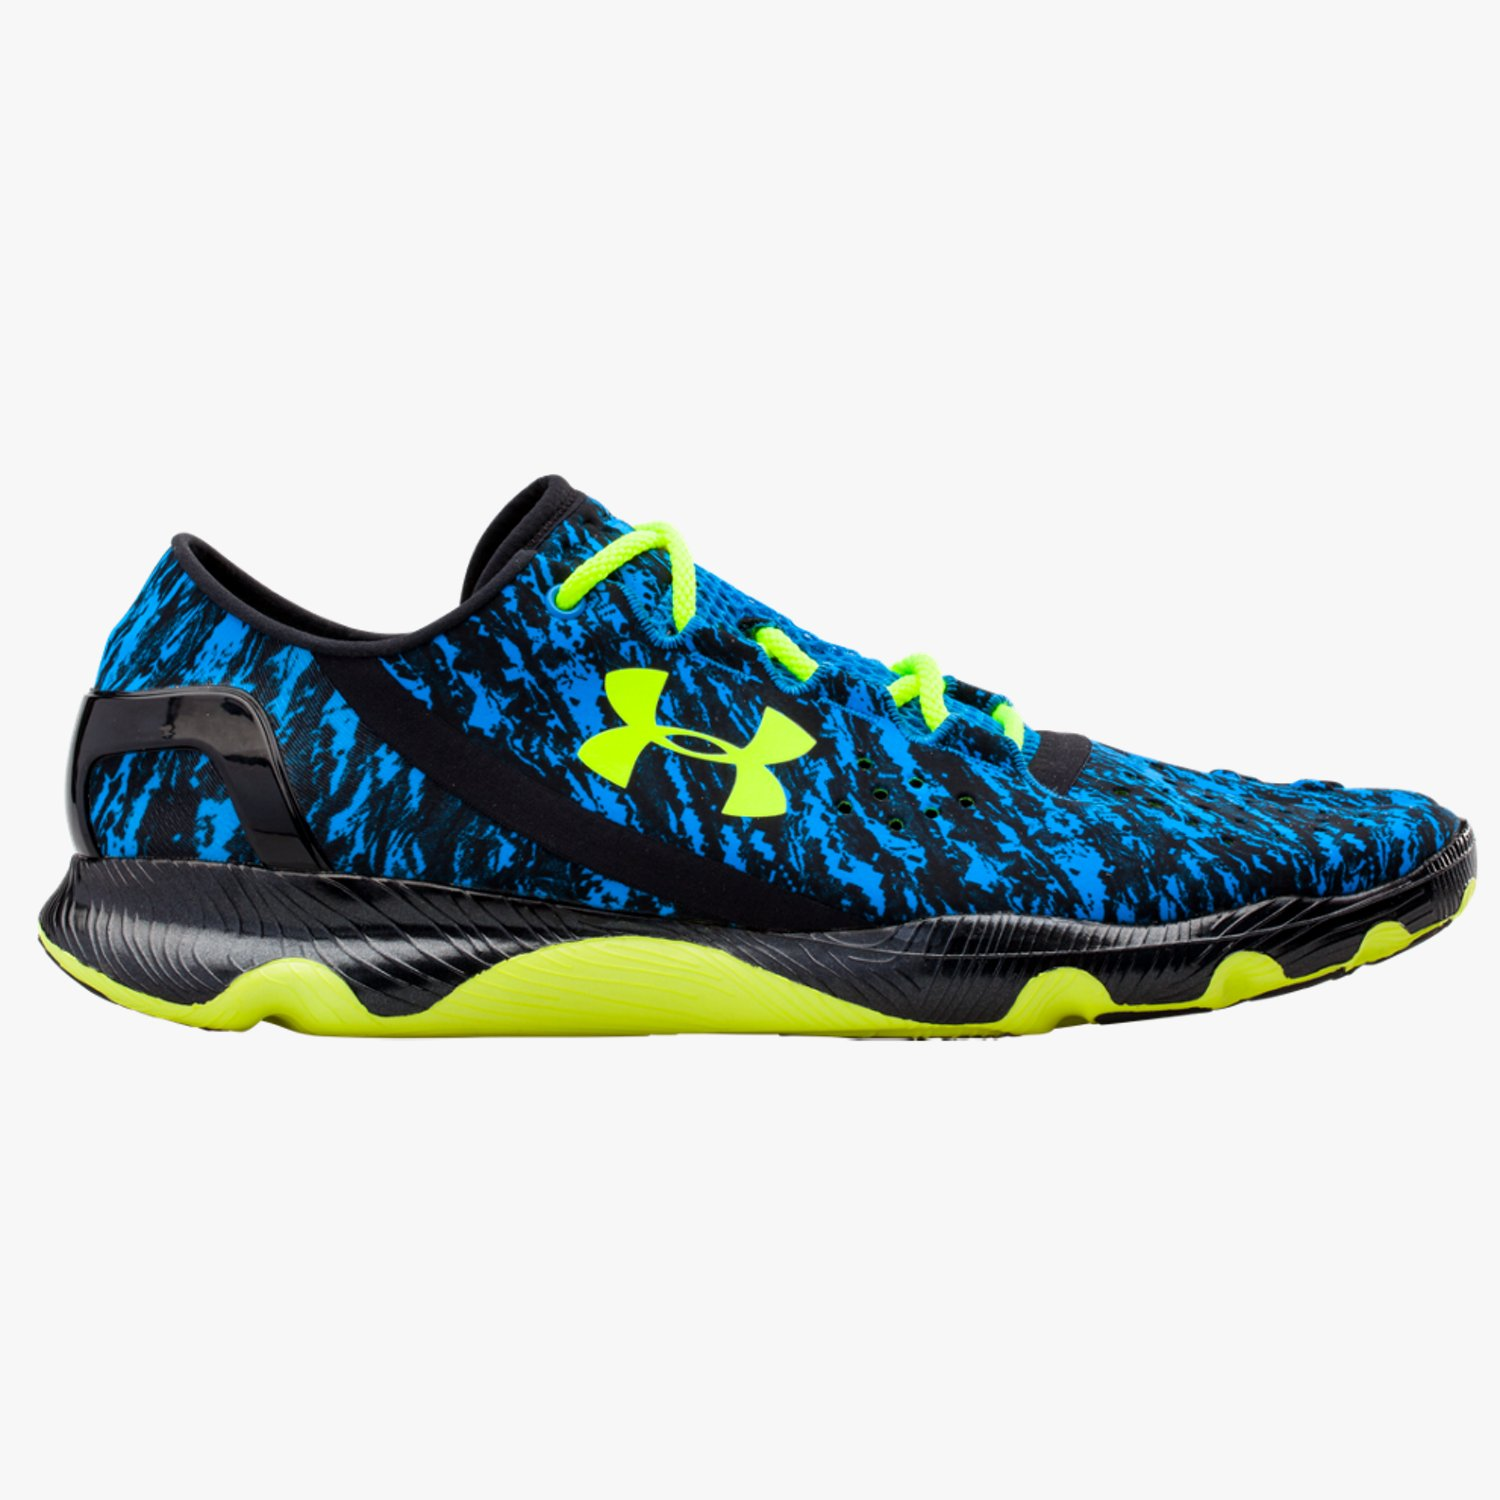 Under Armour UA SpeedForm Apollo Graphic Running Shoes Blue Jet/Black/High-Vis Yellow-30